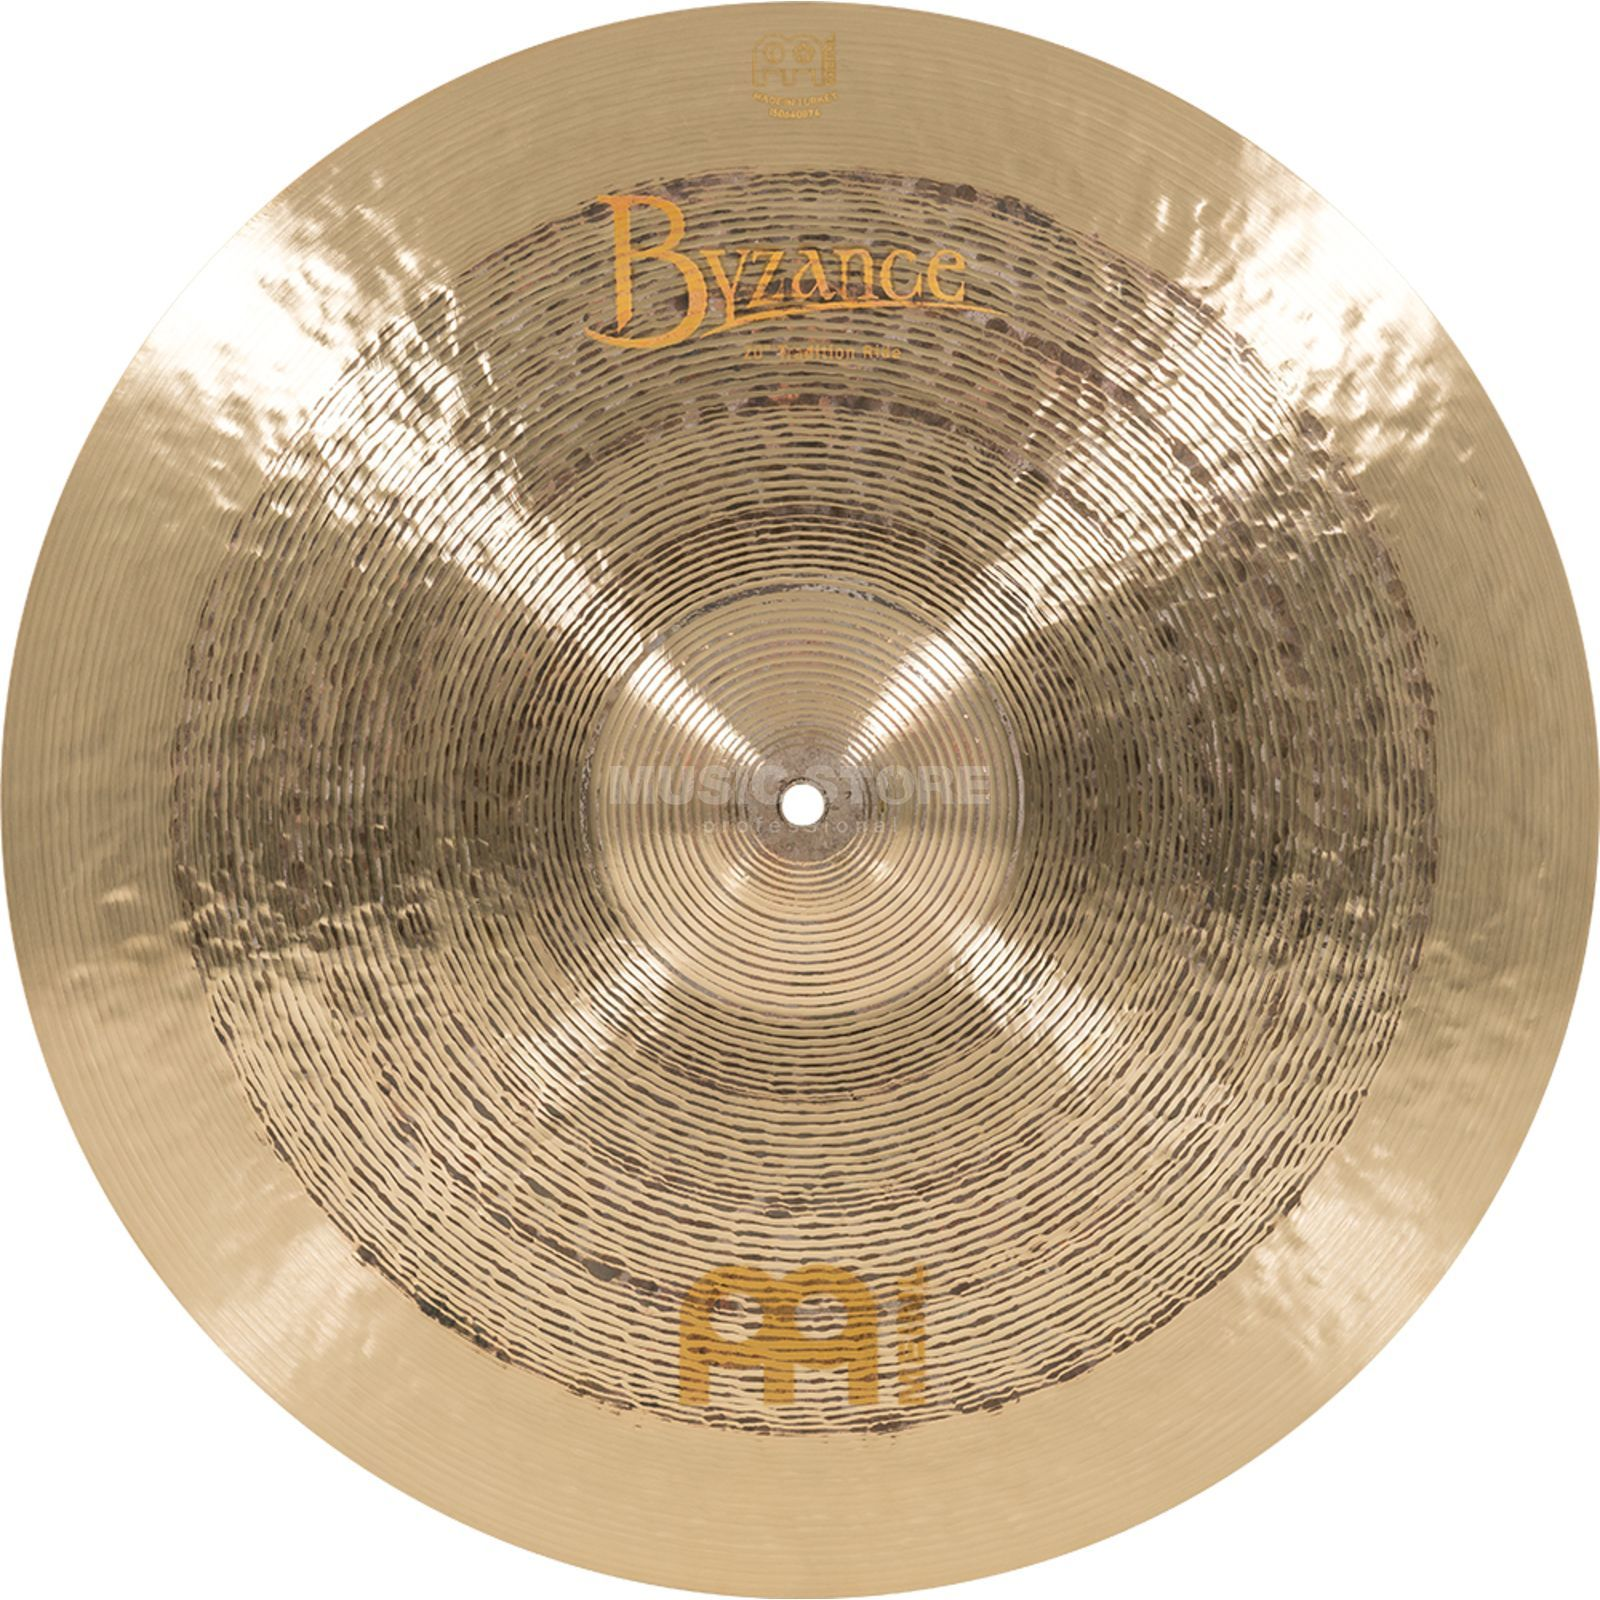 "Meinl Byzance Tradition Ride 20"", B20TRR, Jazz Produktbild"